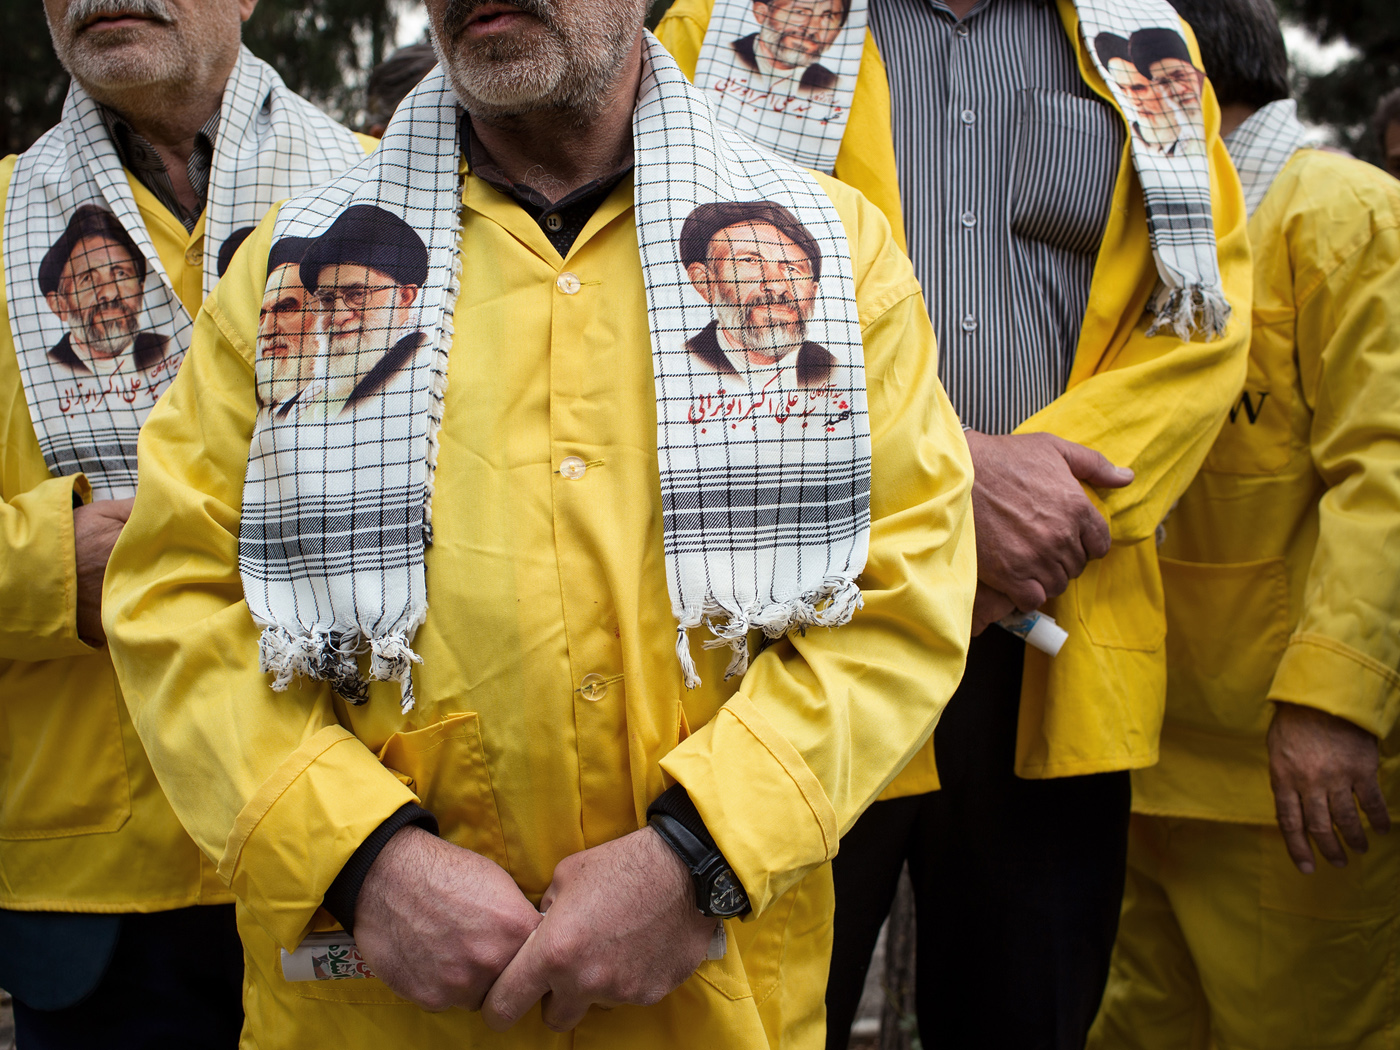 Former prisoners of the Gulf War wearing yellow prison overalls during pray for their dead comrades at Tehran's central cemetery (Behesht-e Zahra).